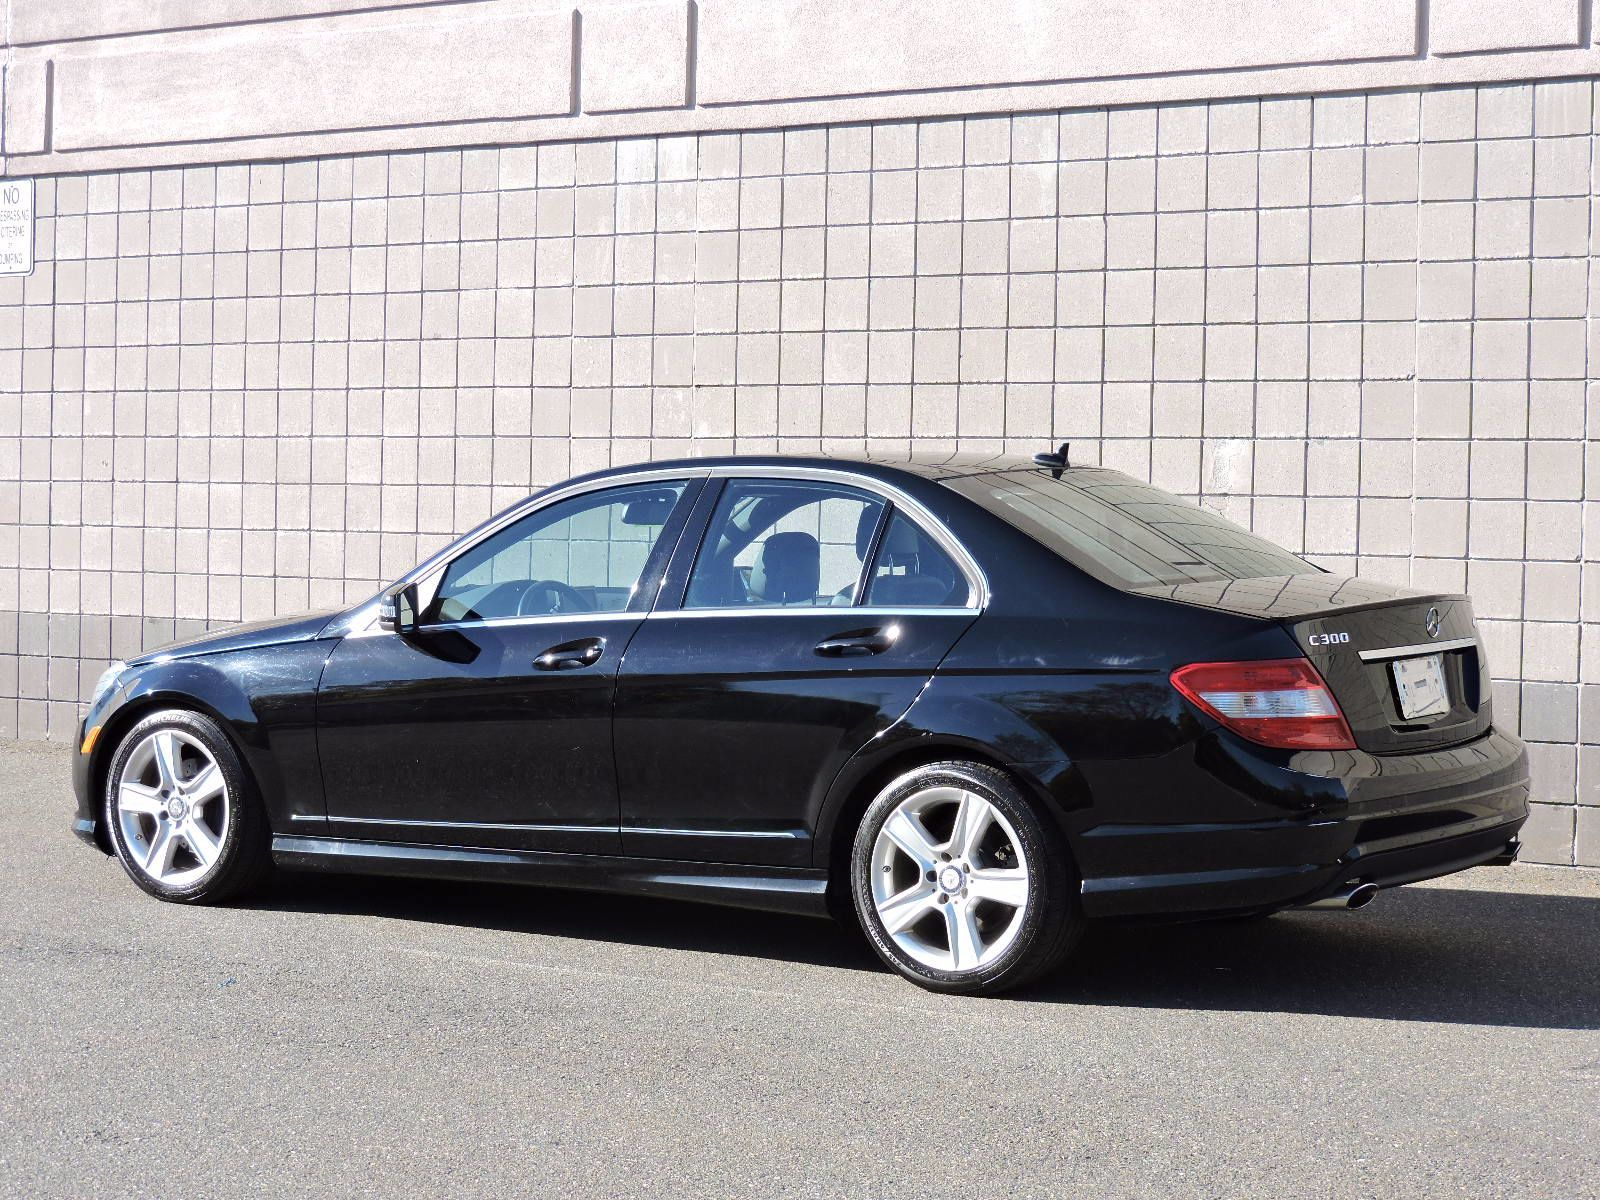 Used 2011 mercedes benz c300 c300 sport at saugus auto mall for Mercedes benz c300 cost